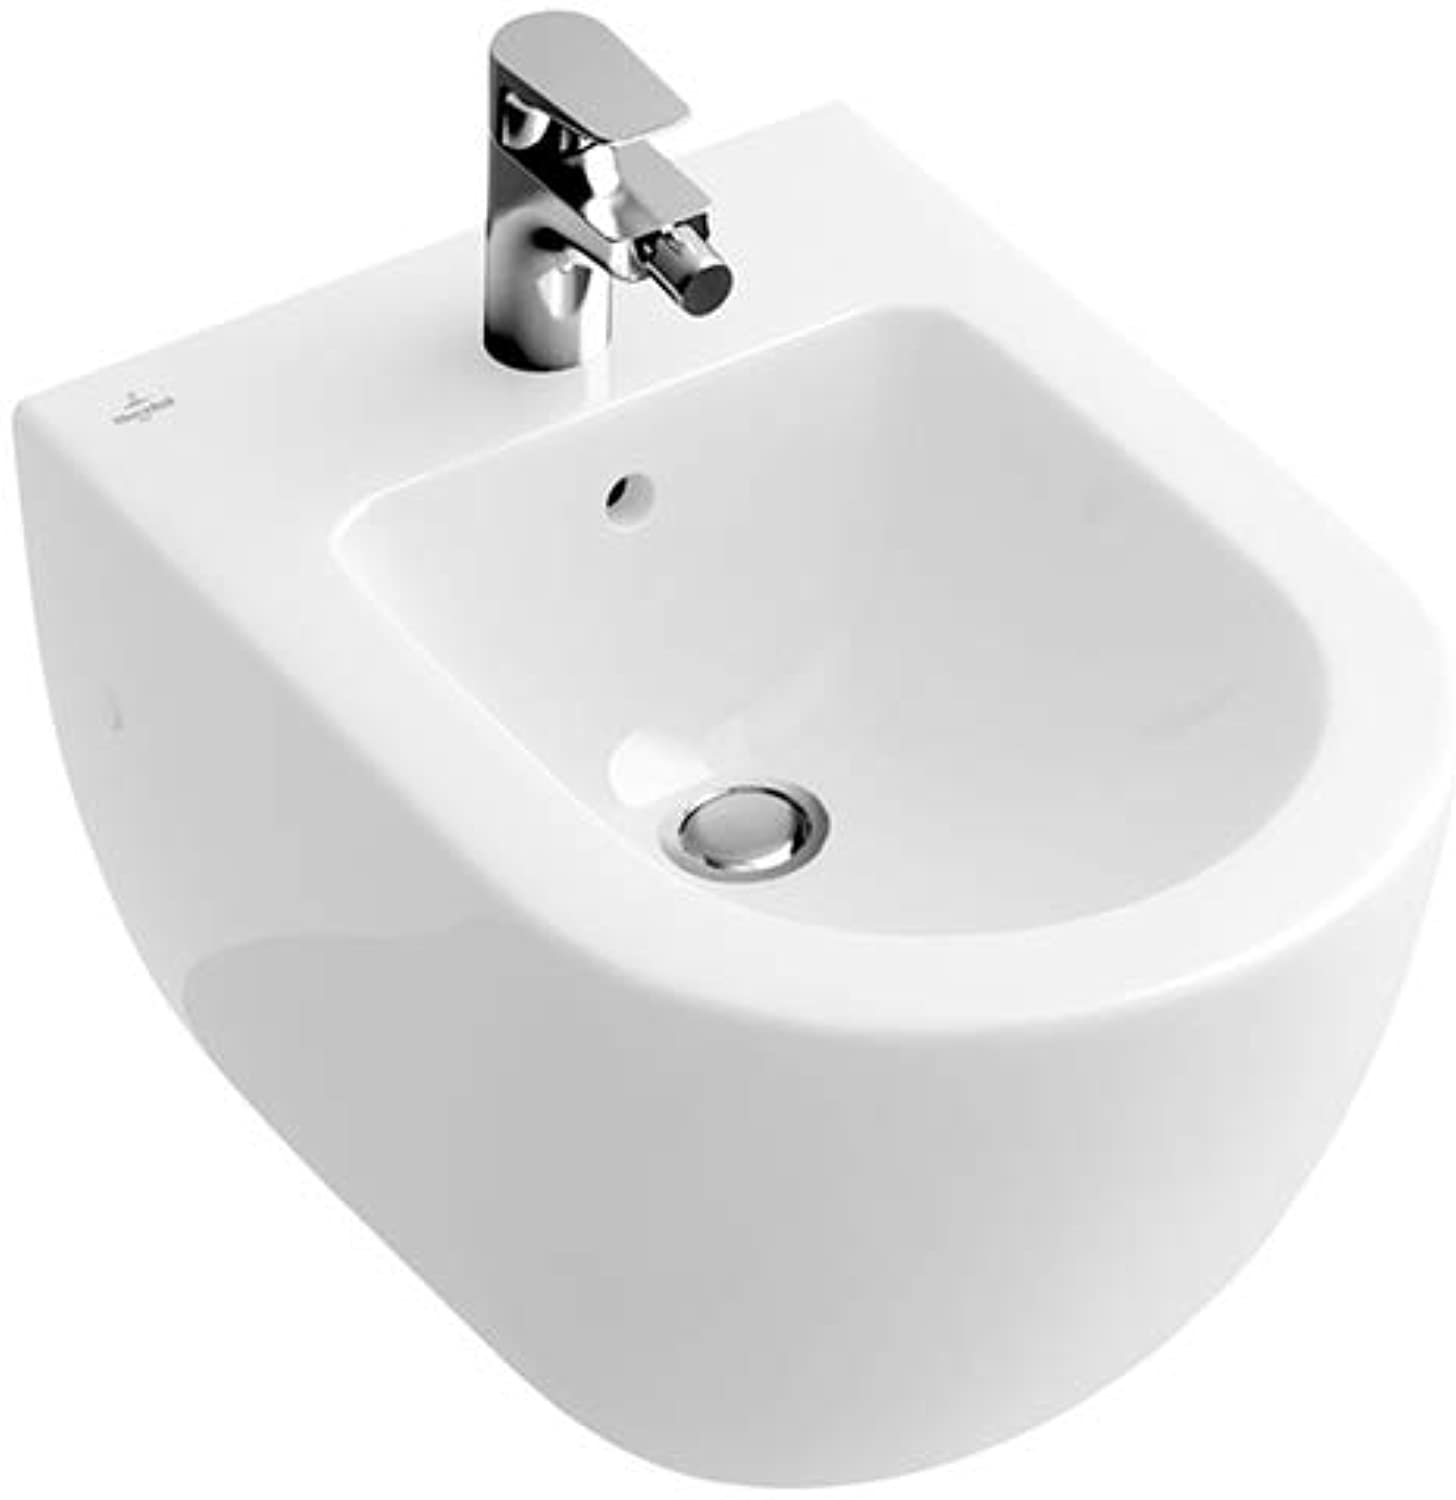 Villeroy & Boch SUBWAY Wand-Bidet 370 x 560 mm star Weiß activecare